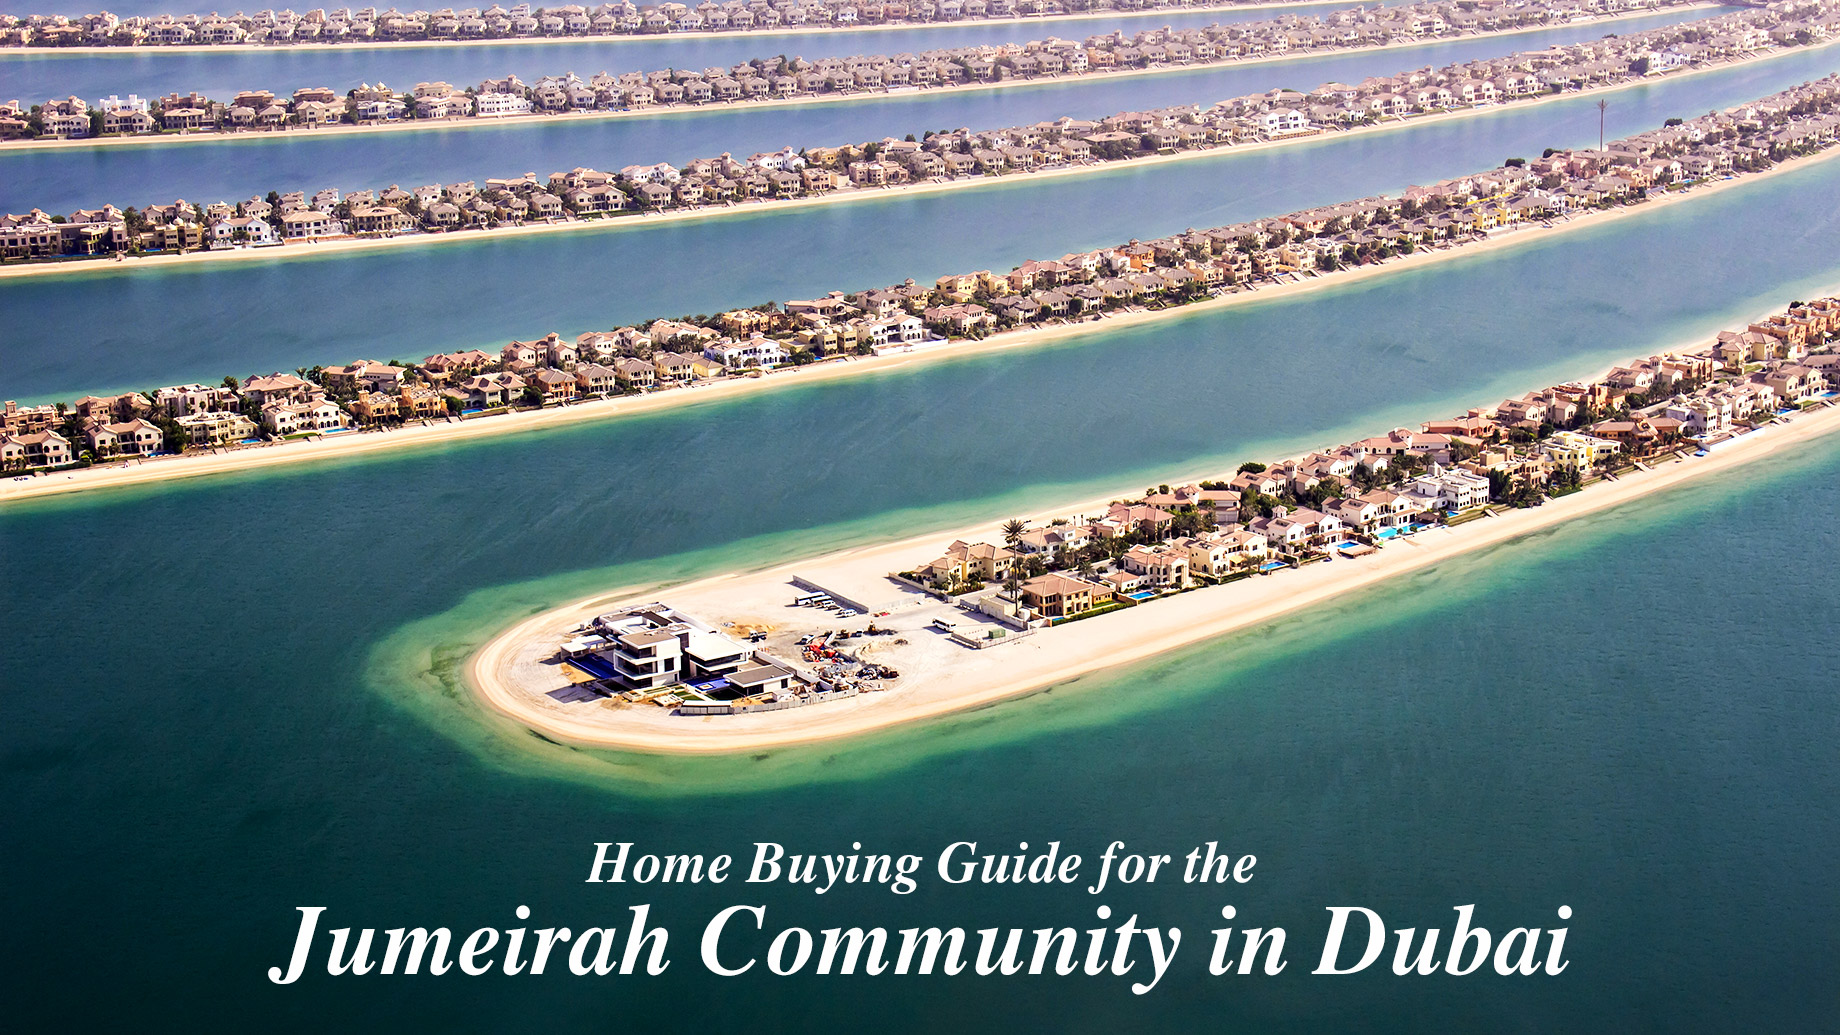 Home Buying Guide for the Jumeirah Community in Dubai